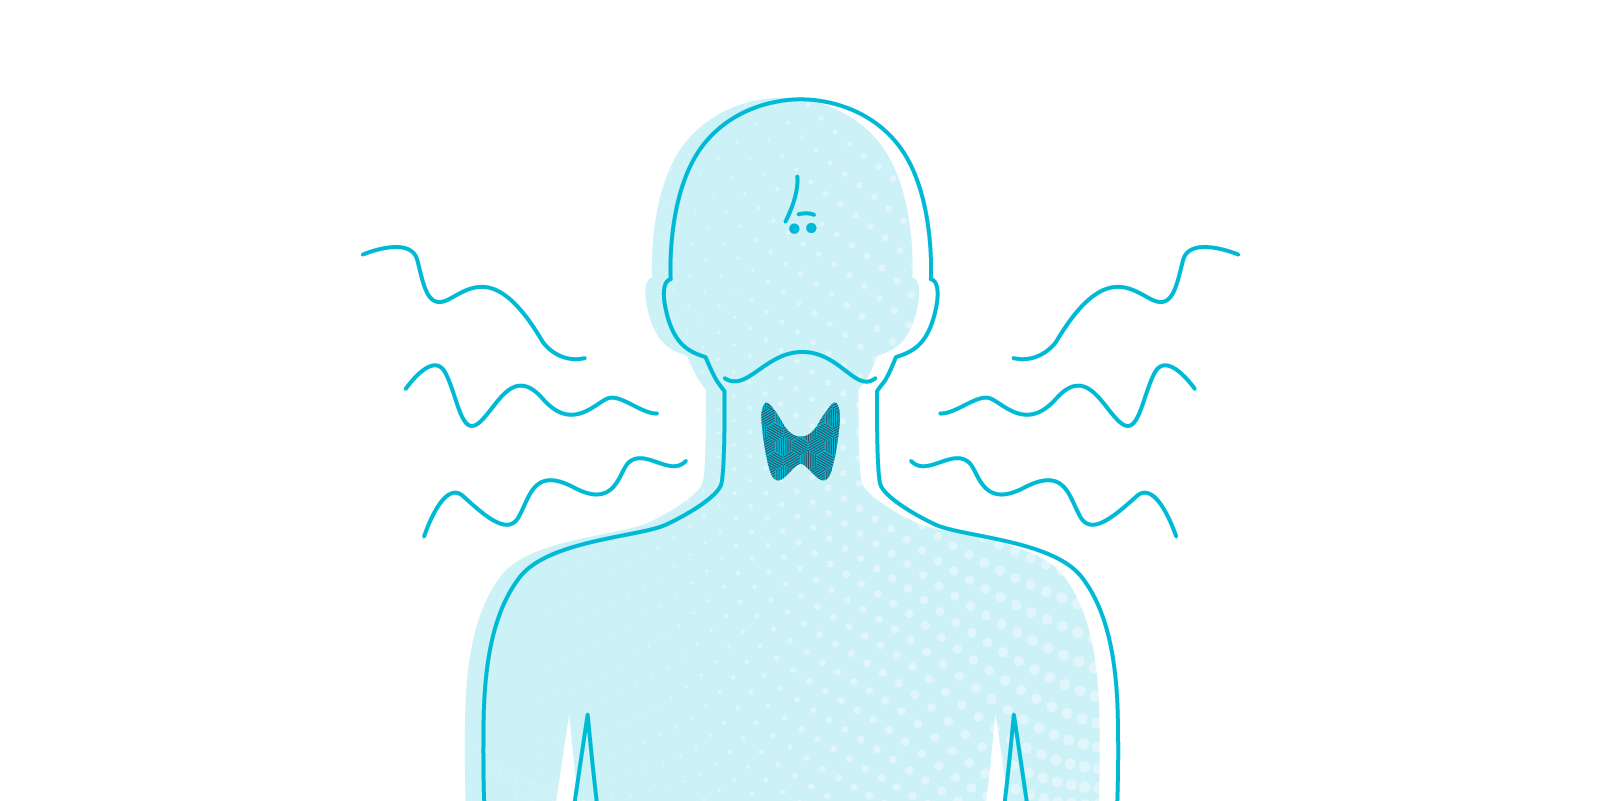 An estimated 200 million people suffer from thyroid problems worldwide. LetsGetChecked talk you through the signs and symptoms of thyroid related issues.